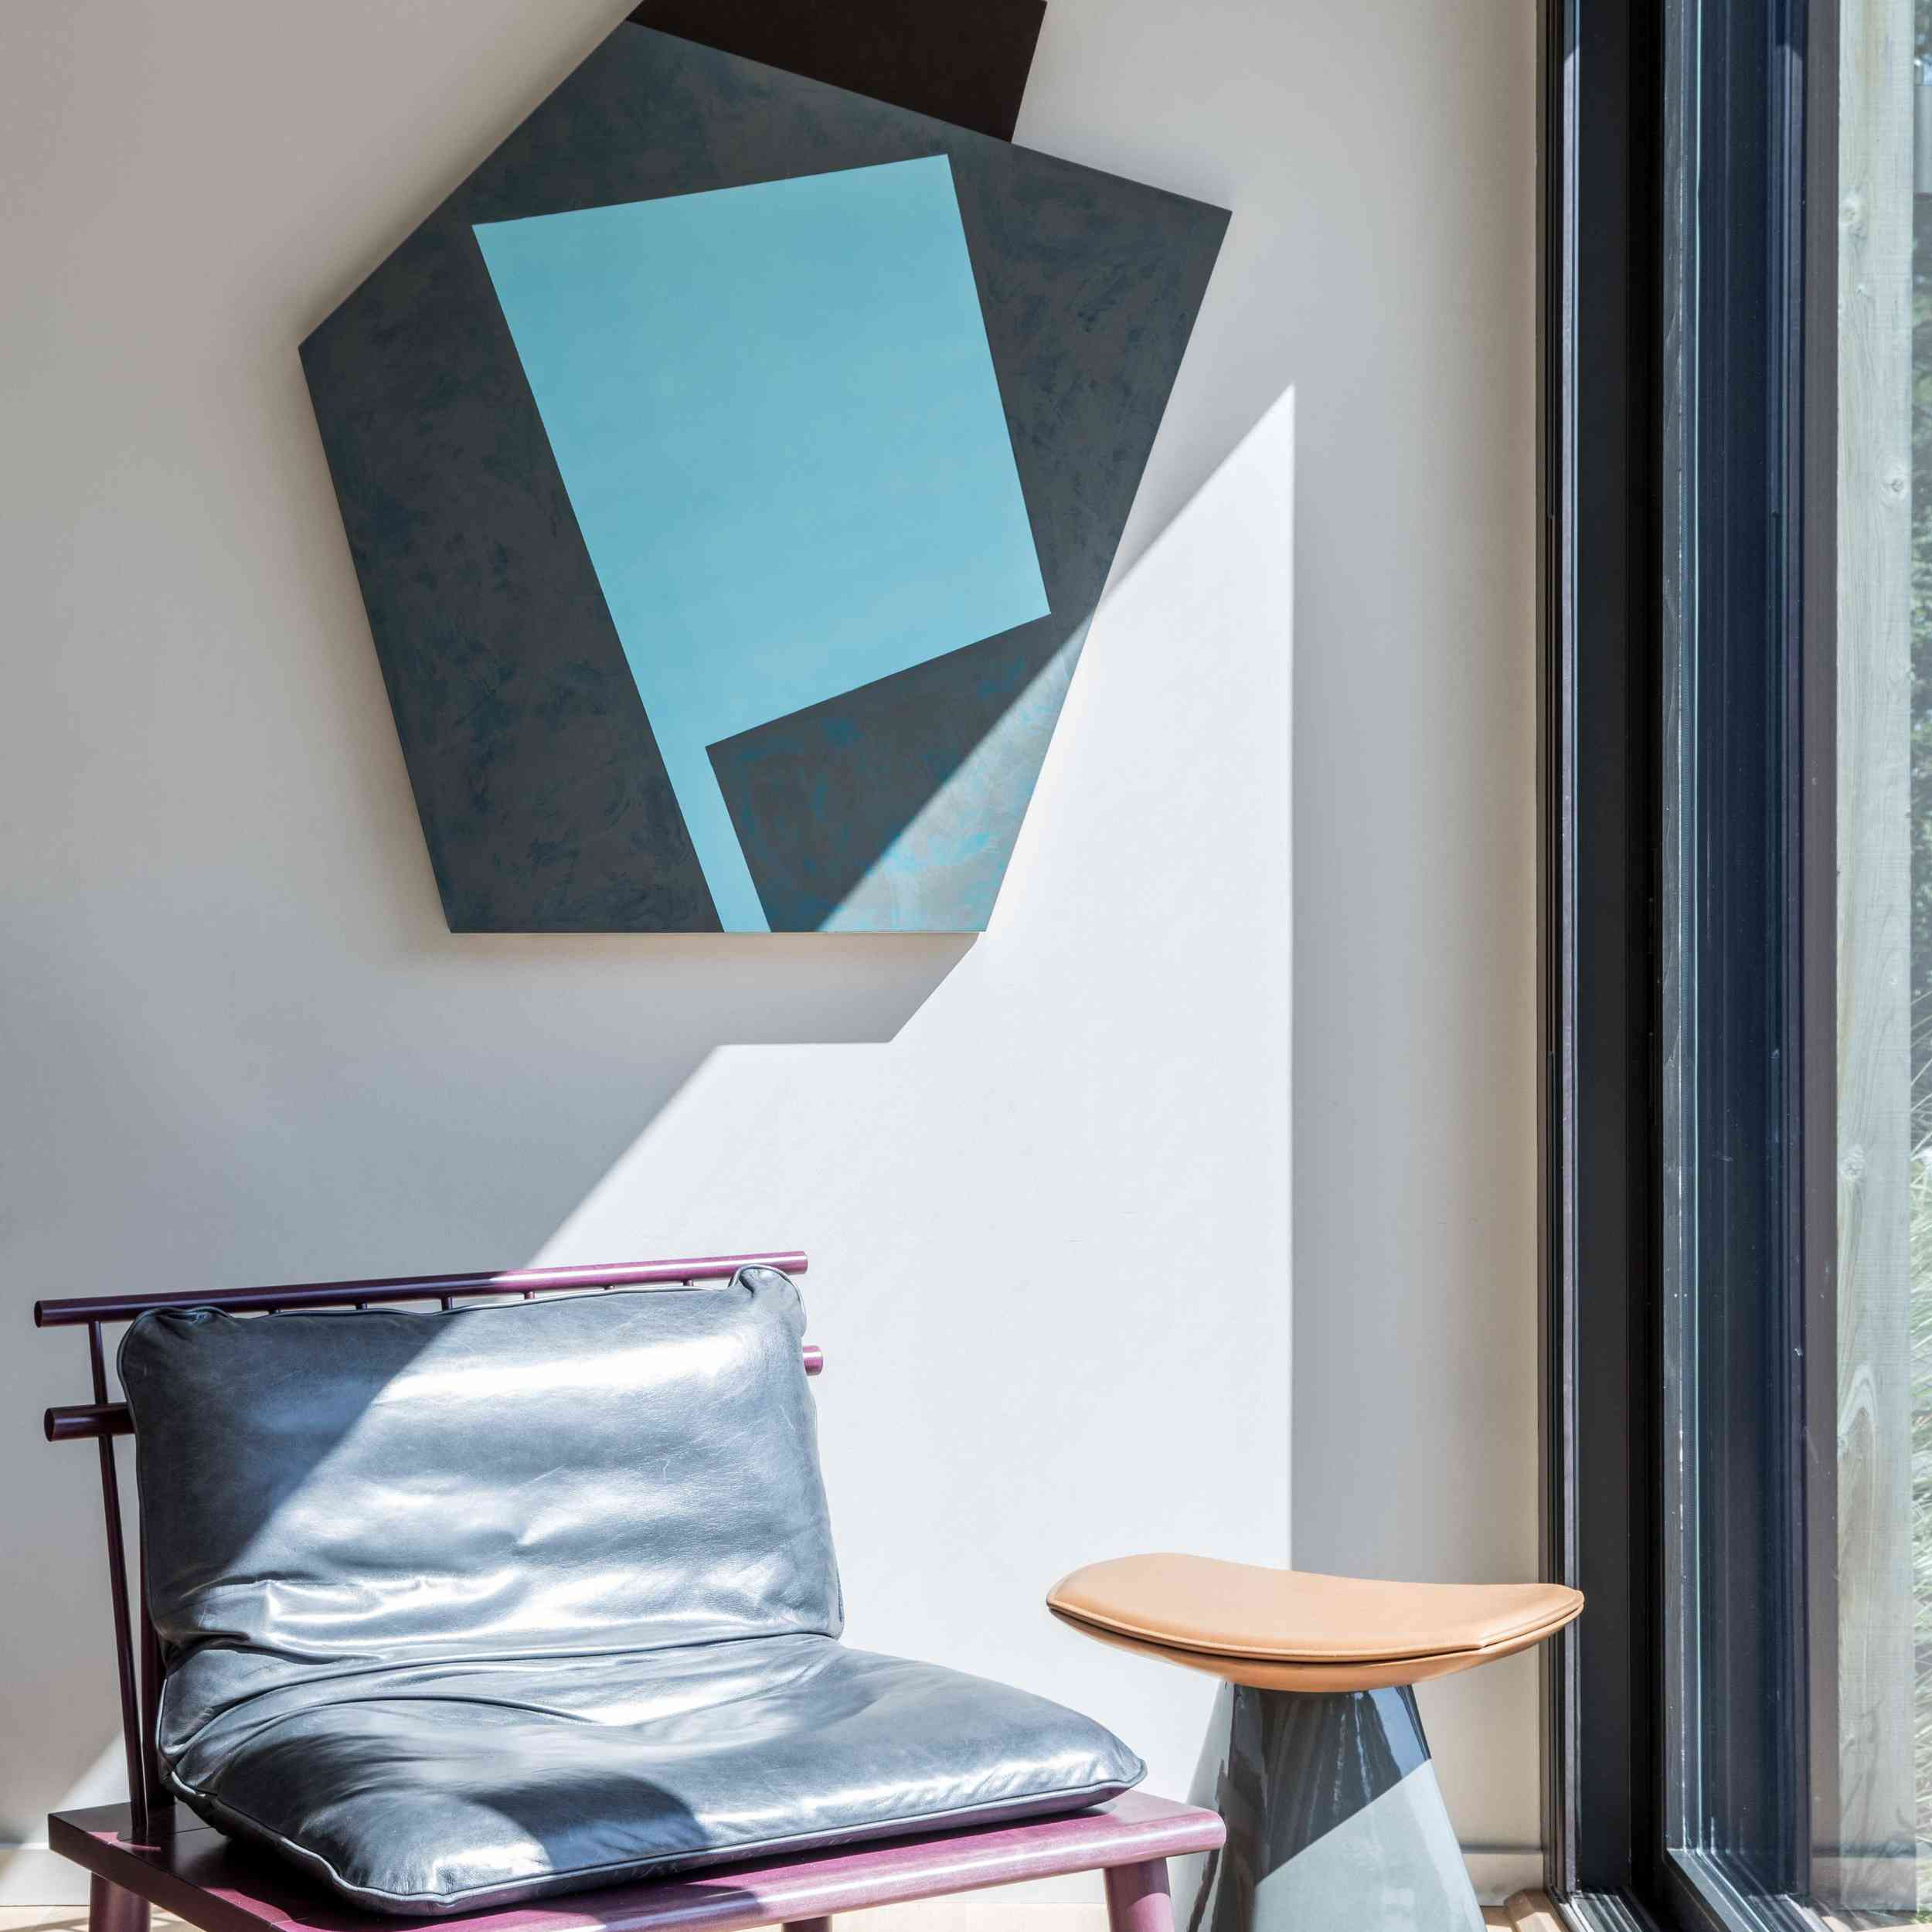 A room corner decorated with sleek furniture and modern art